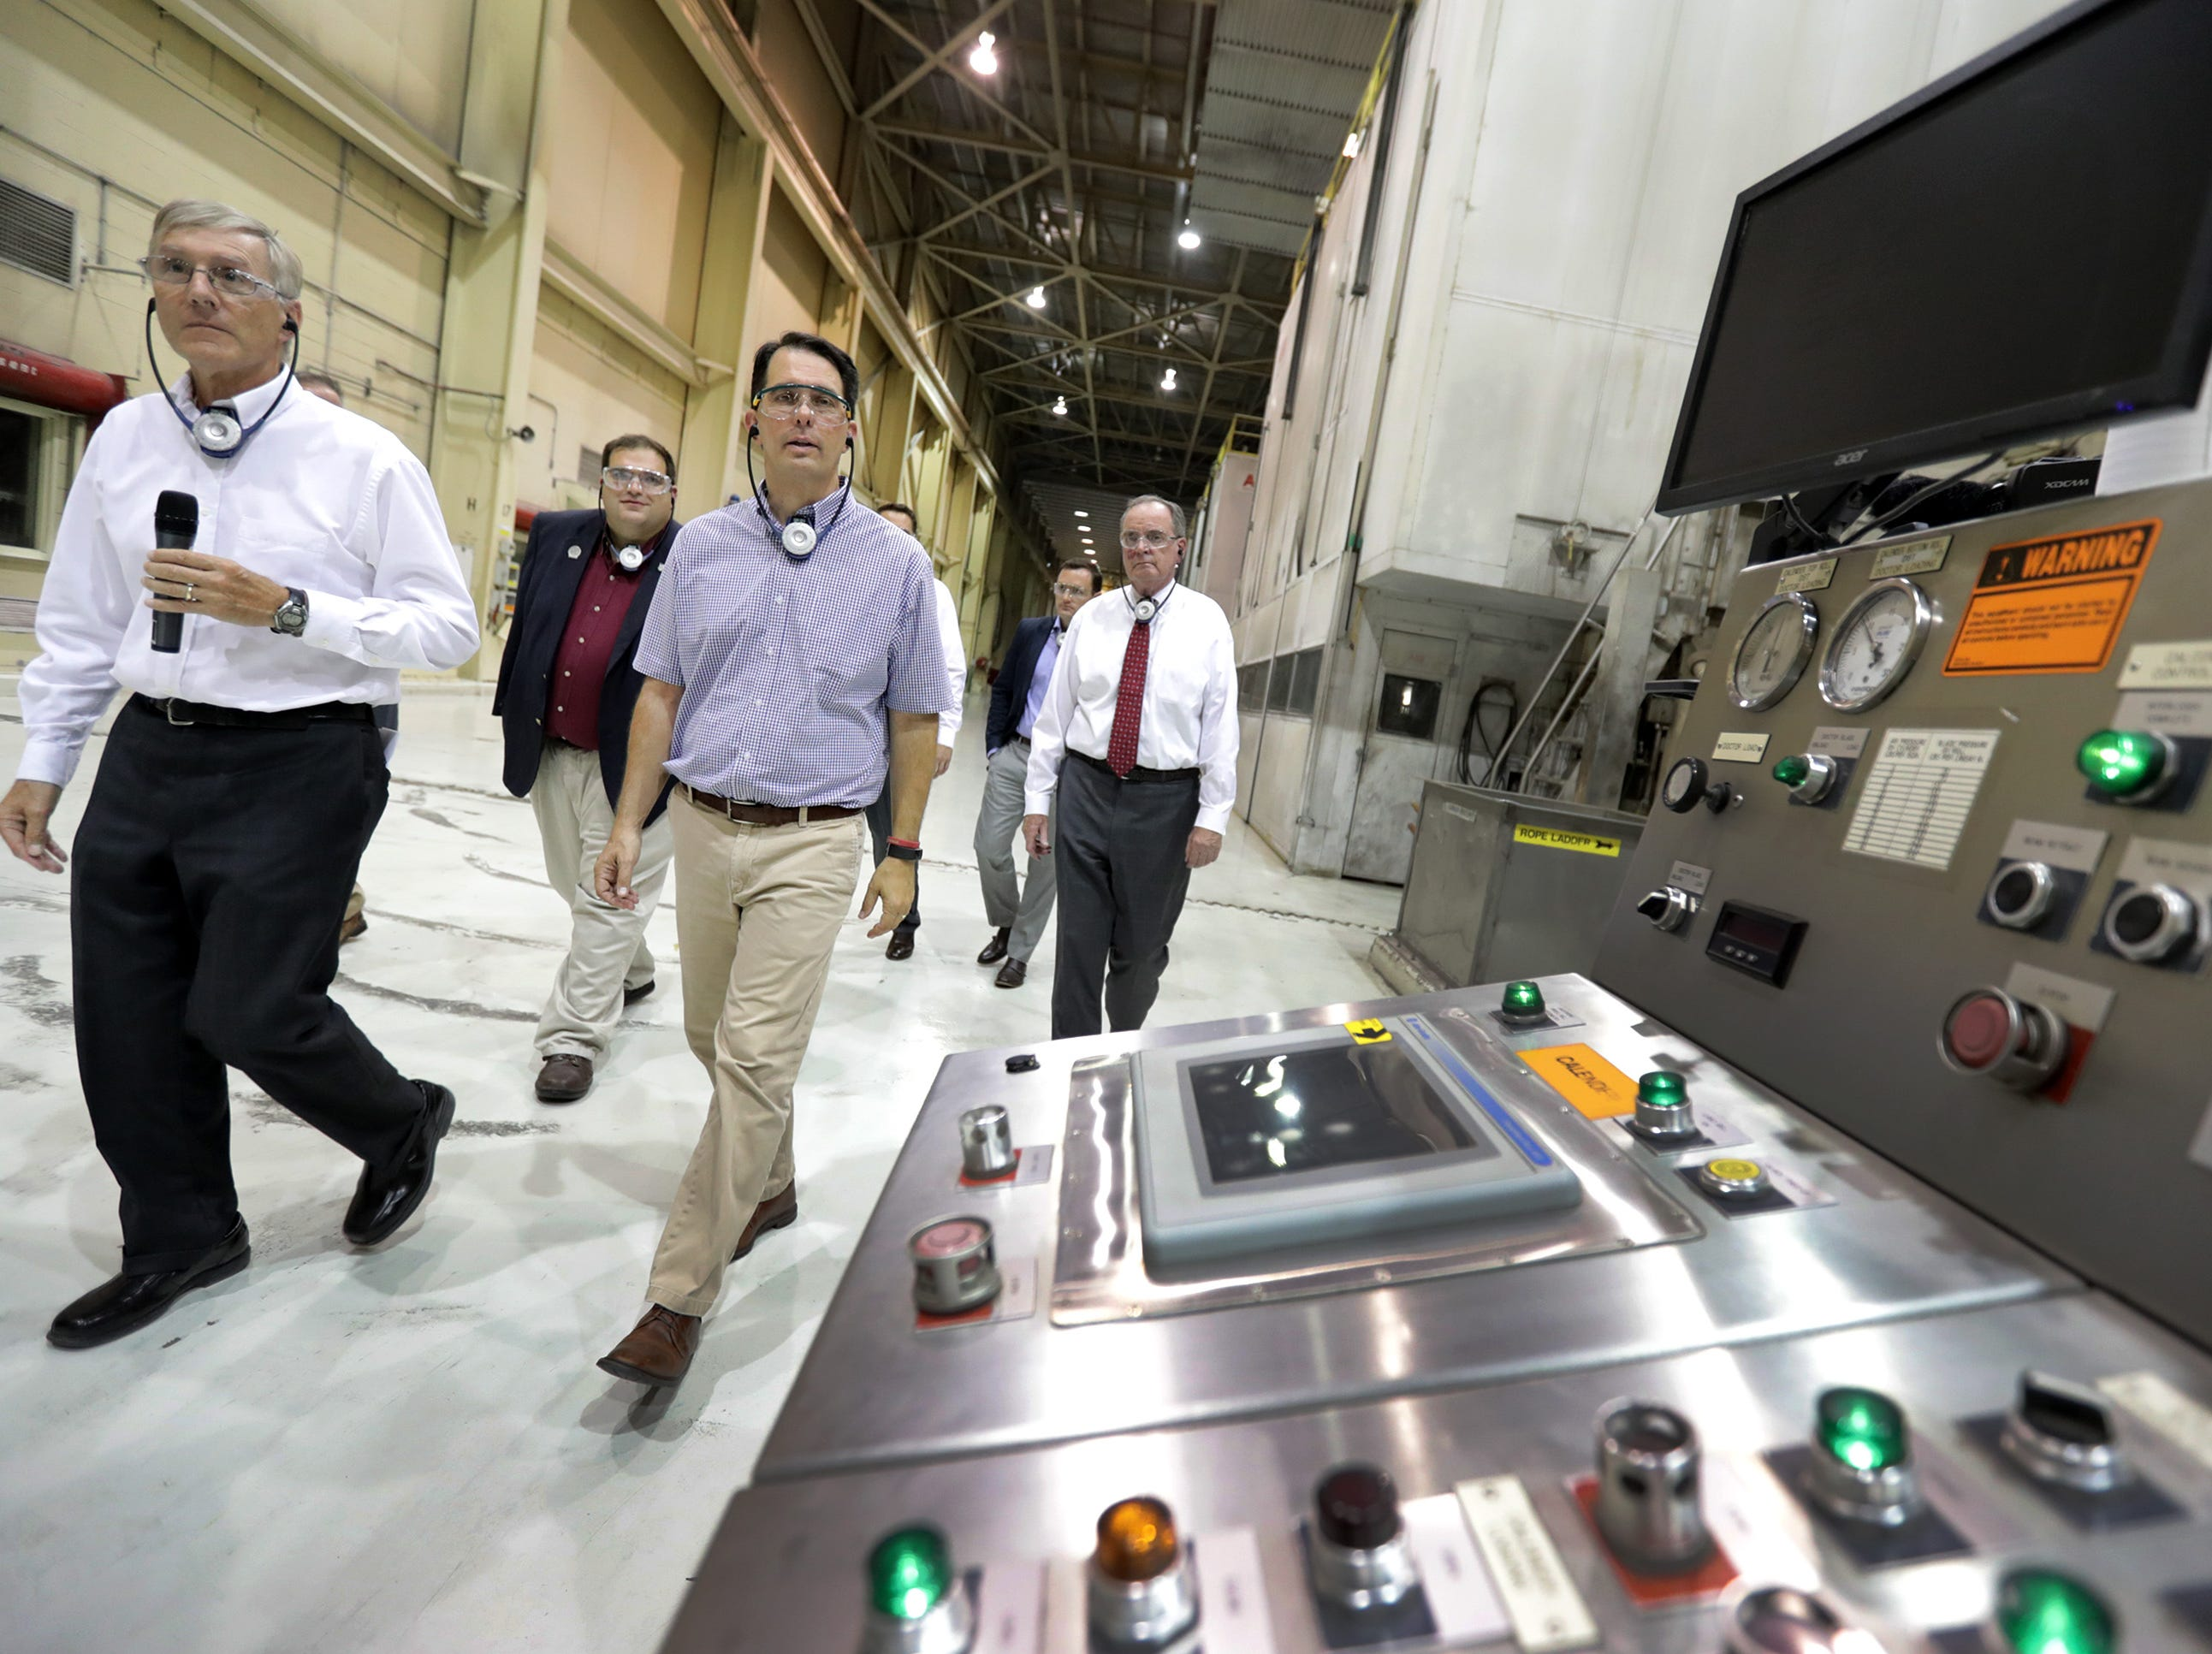 Managing Director Doug Osterberg, left, leads Governor Scott Walker on a plant tour before the announcement of $1.8 million in state tax credits from the Wisconsin Economic Development Corporation to suppoert Midwest Paper Group's effort to modernize the former Appleton Coated Paper Mill on Monday, July 30, 2018 in Combined Locks Wis. Midwest Paper Group has pledged to create 321 jobs and invest $30 million.